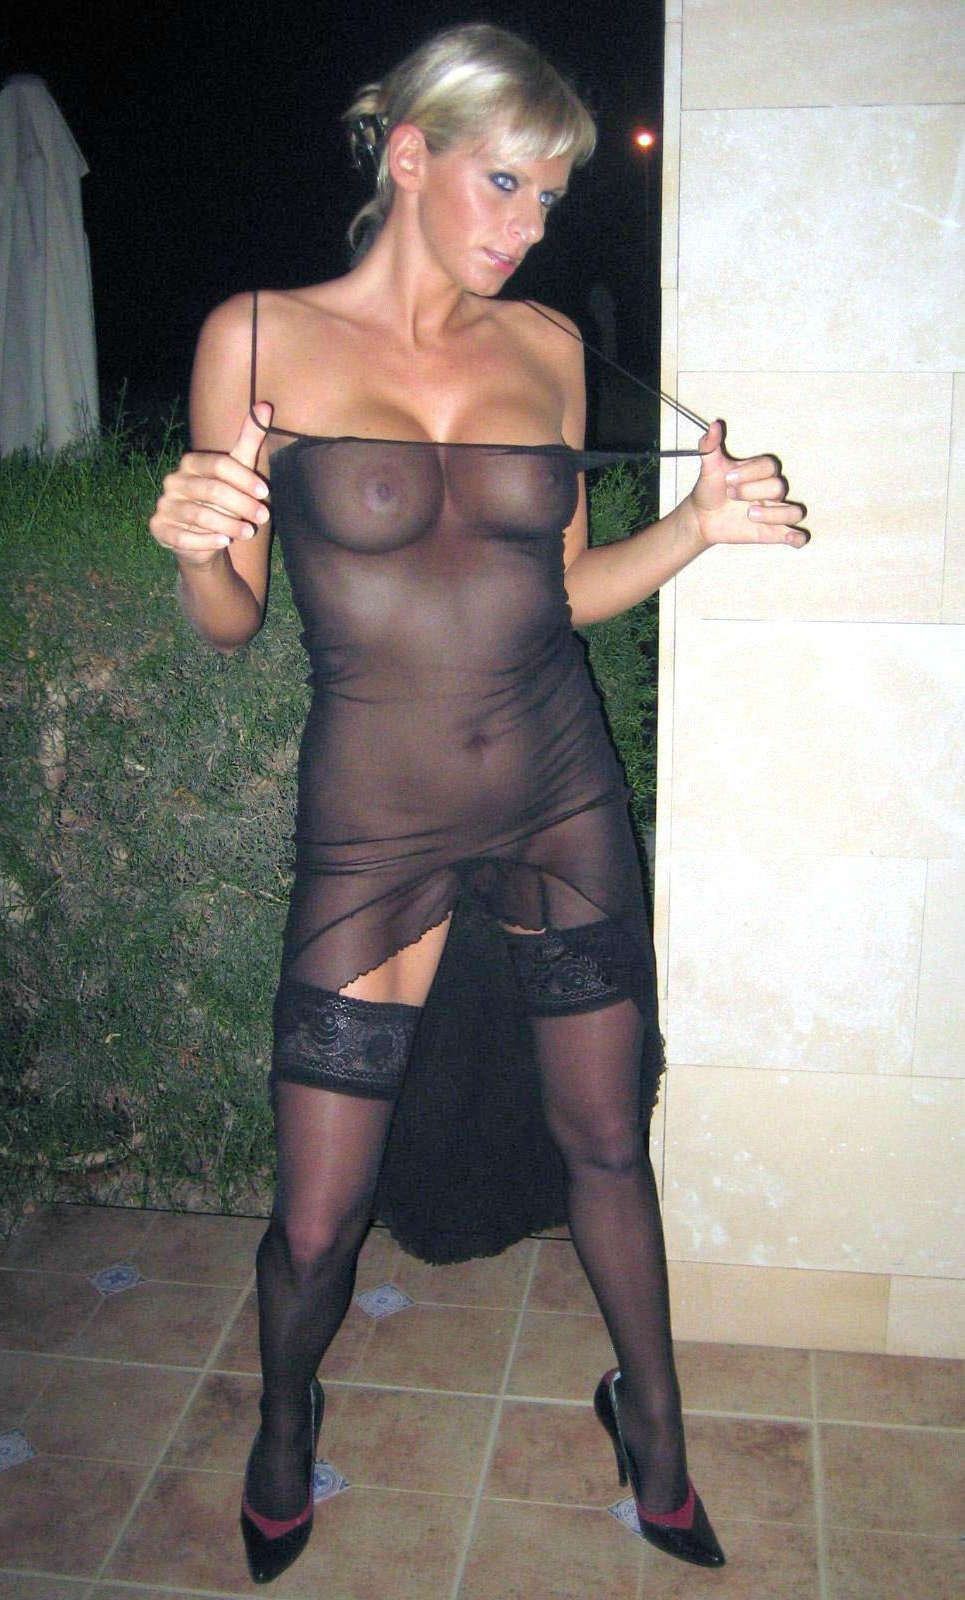 56, and Sexy Nude Girls Making Out totally understood that and